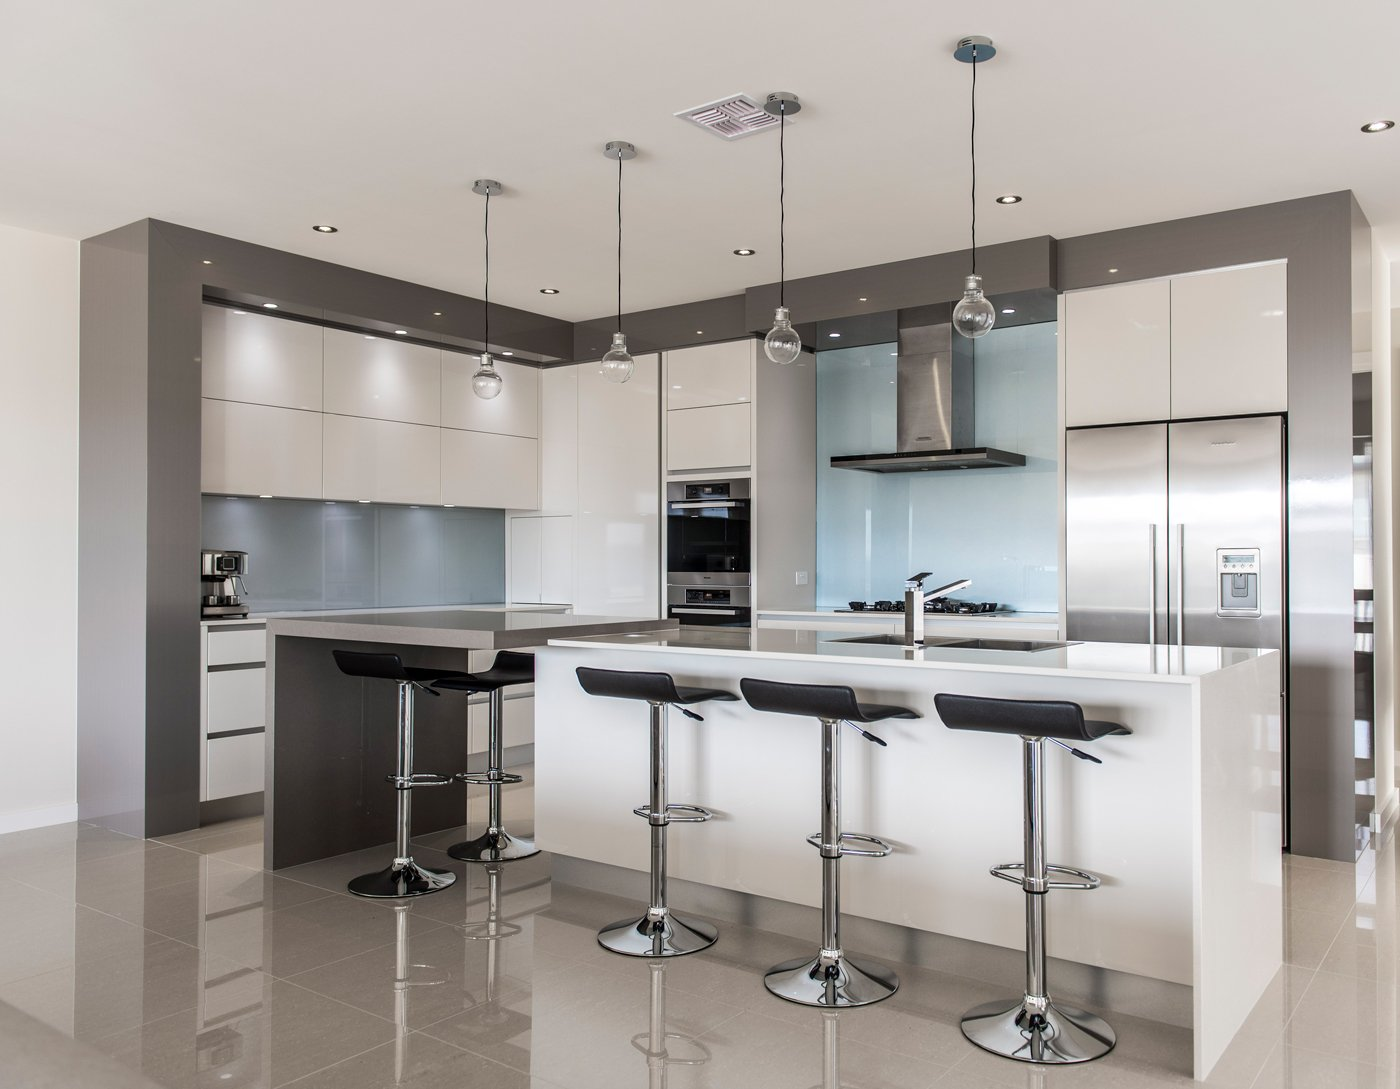 Simplicity kitchens canberra act kitchen designer for Kitchen kitchen kitchen